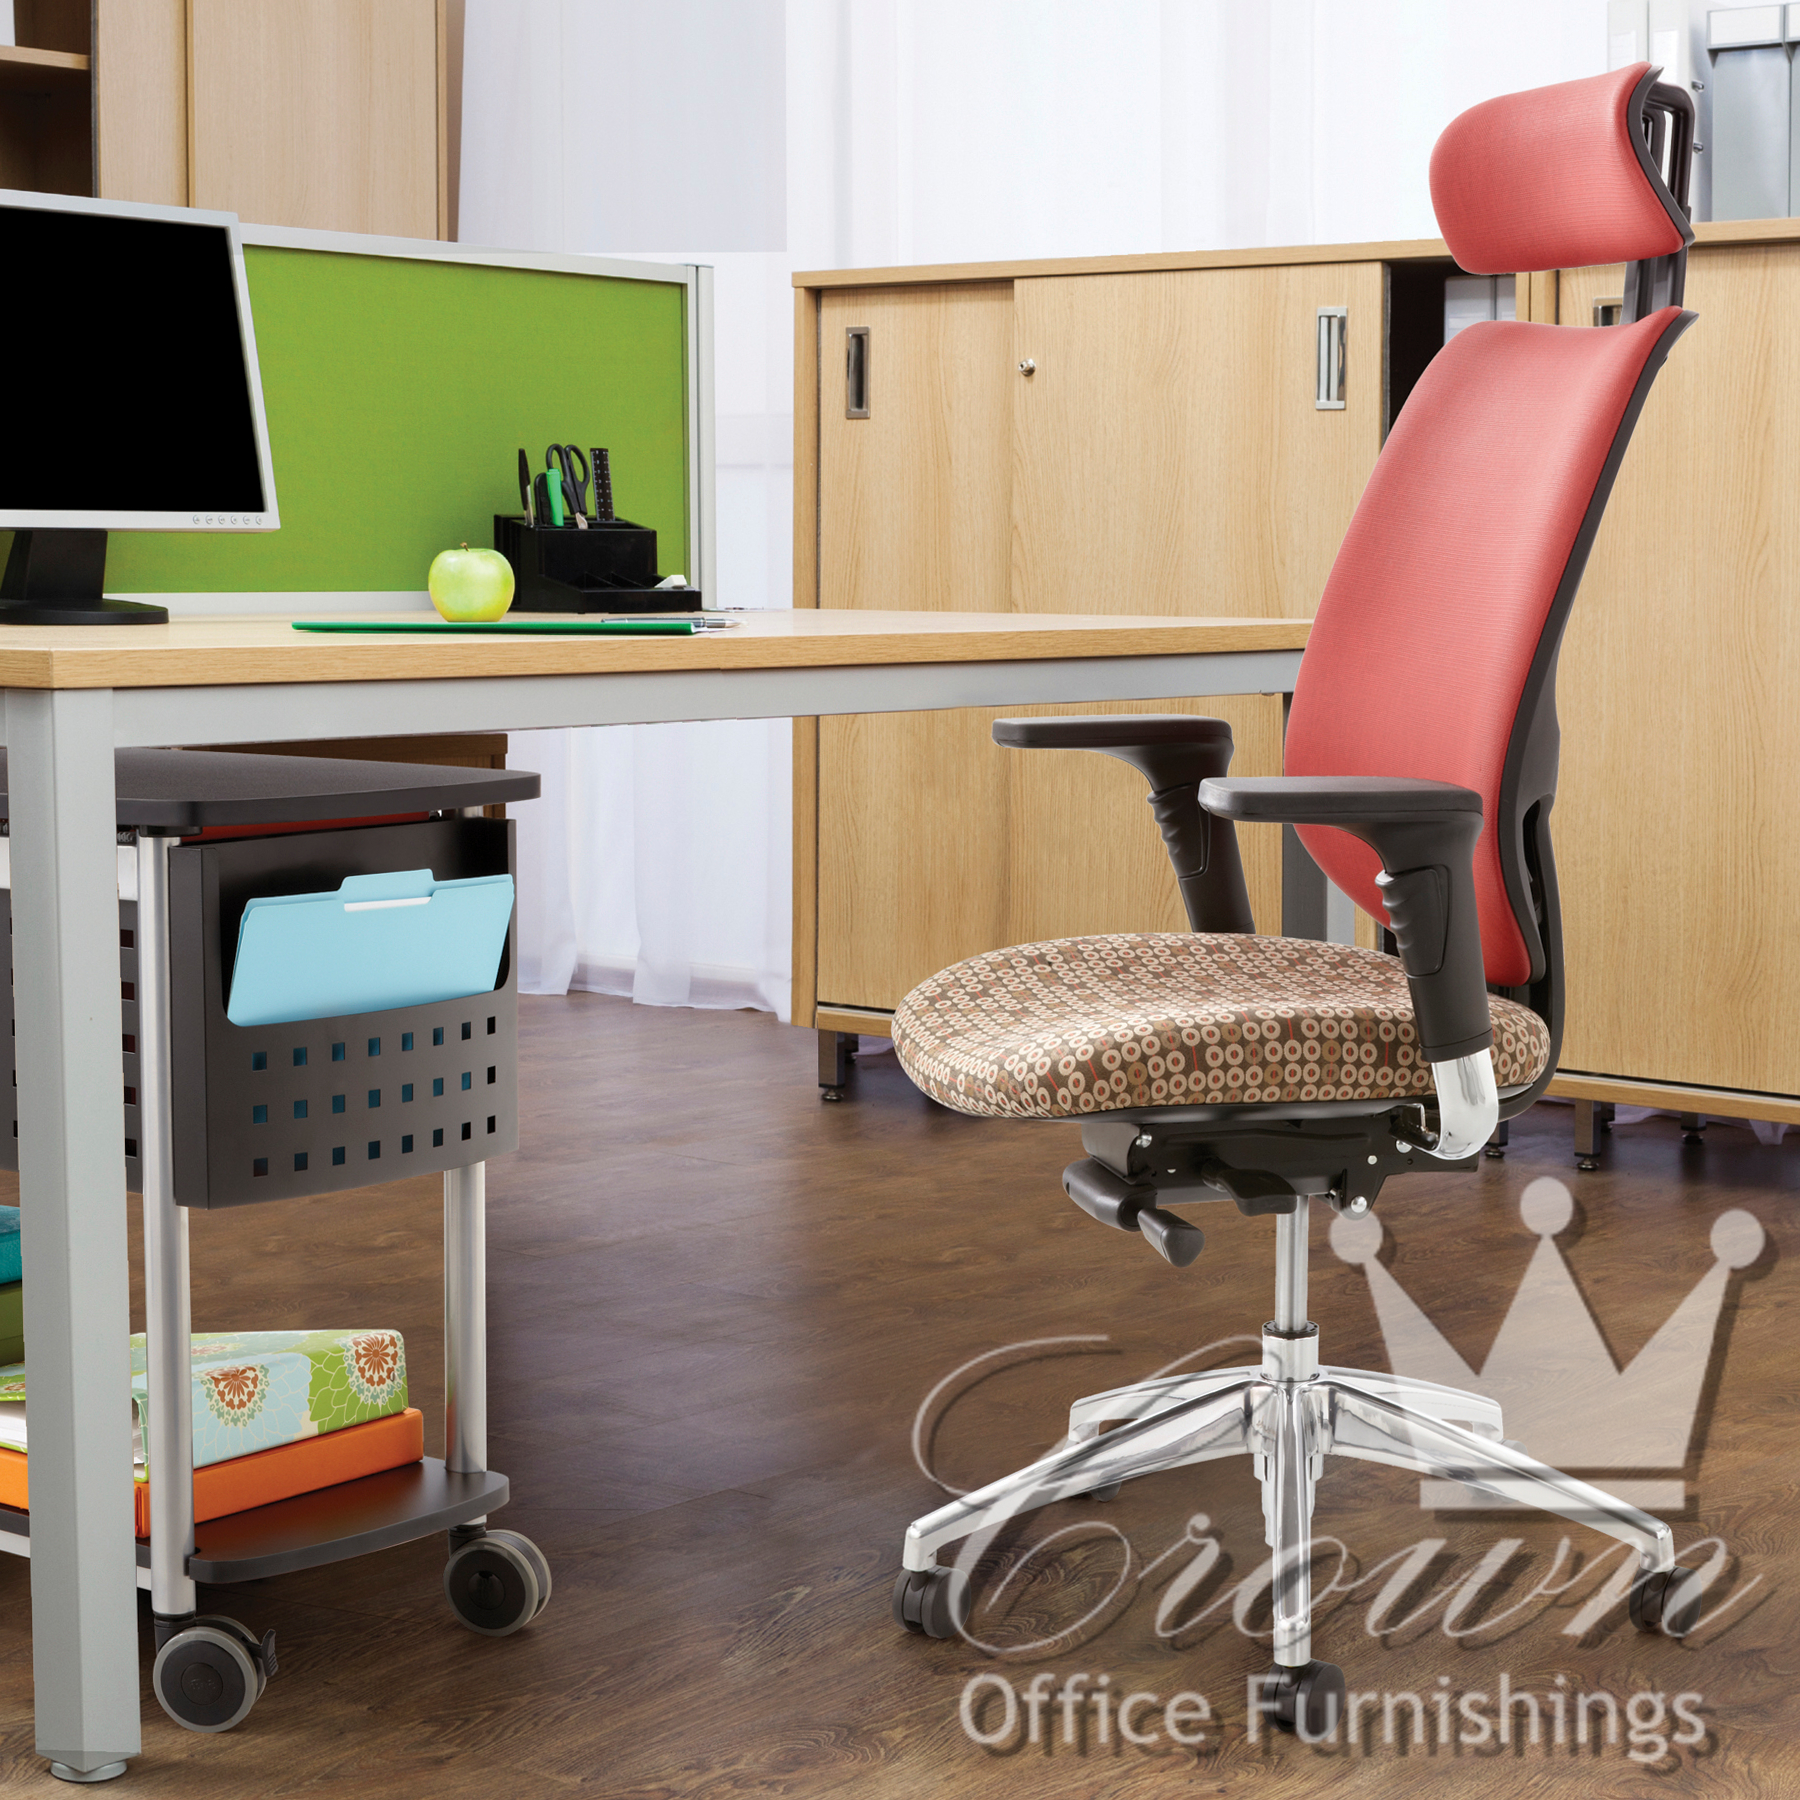 Office Furniture Tulsa Home Ideas